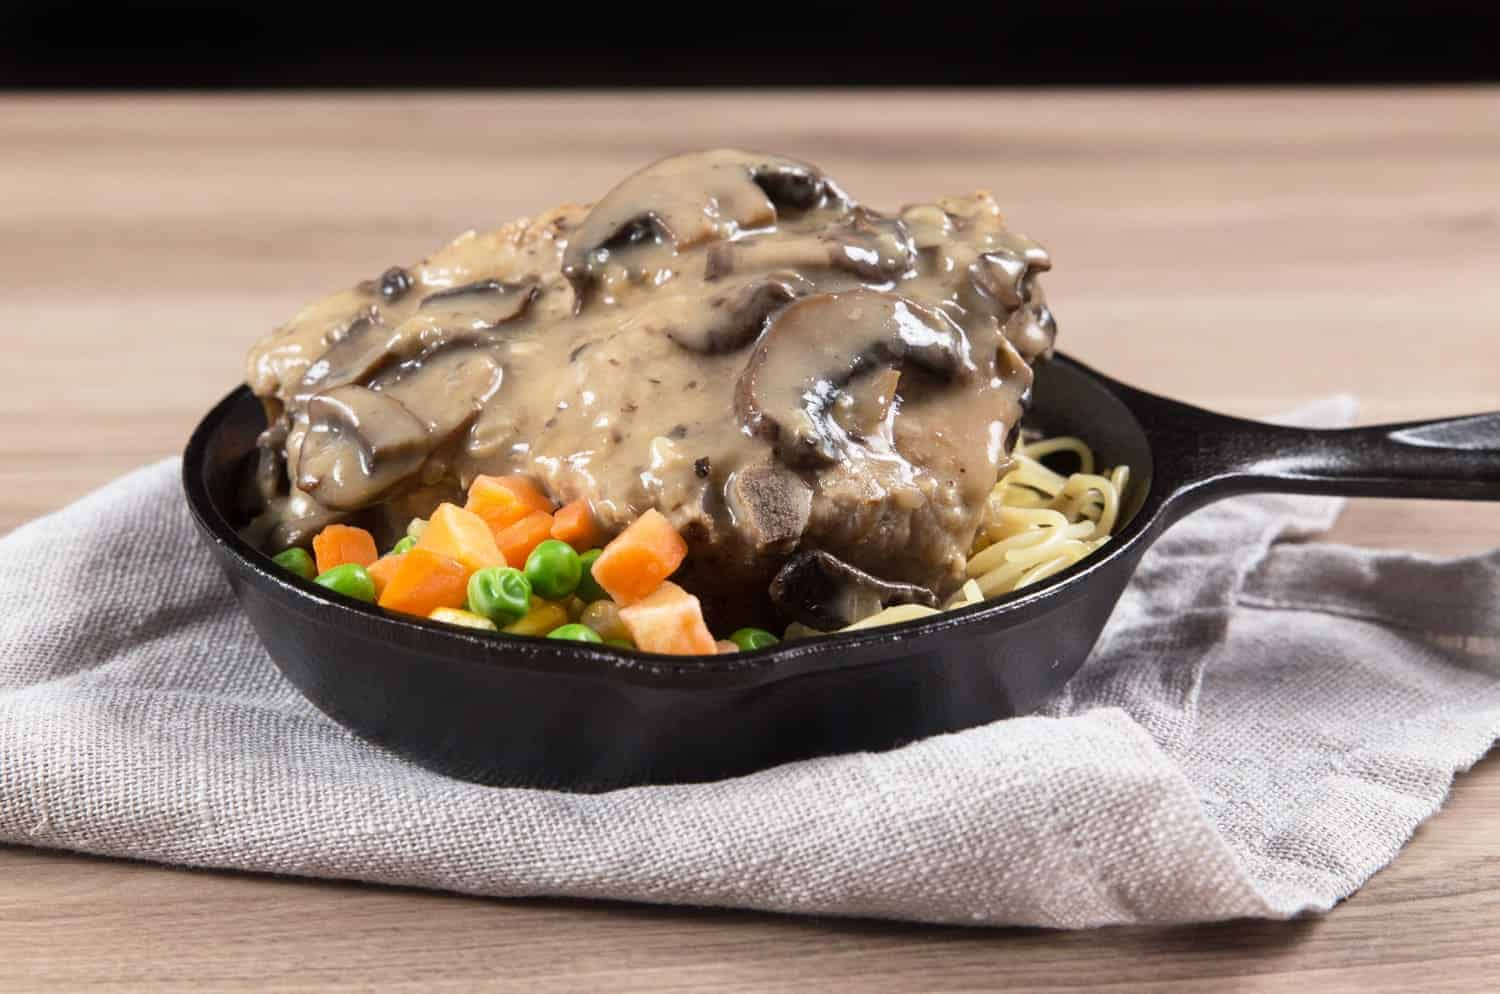 Easy Instant Pot Pork Chops Recipe with classic homemade HK Mushroom Gravy! Comforting Umami Pressure Cooker Pork Chops are tender and moist.